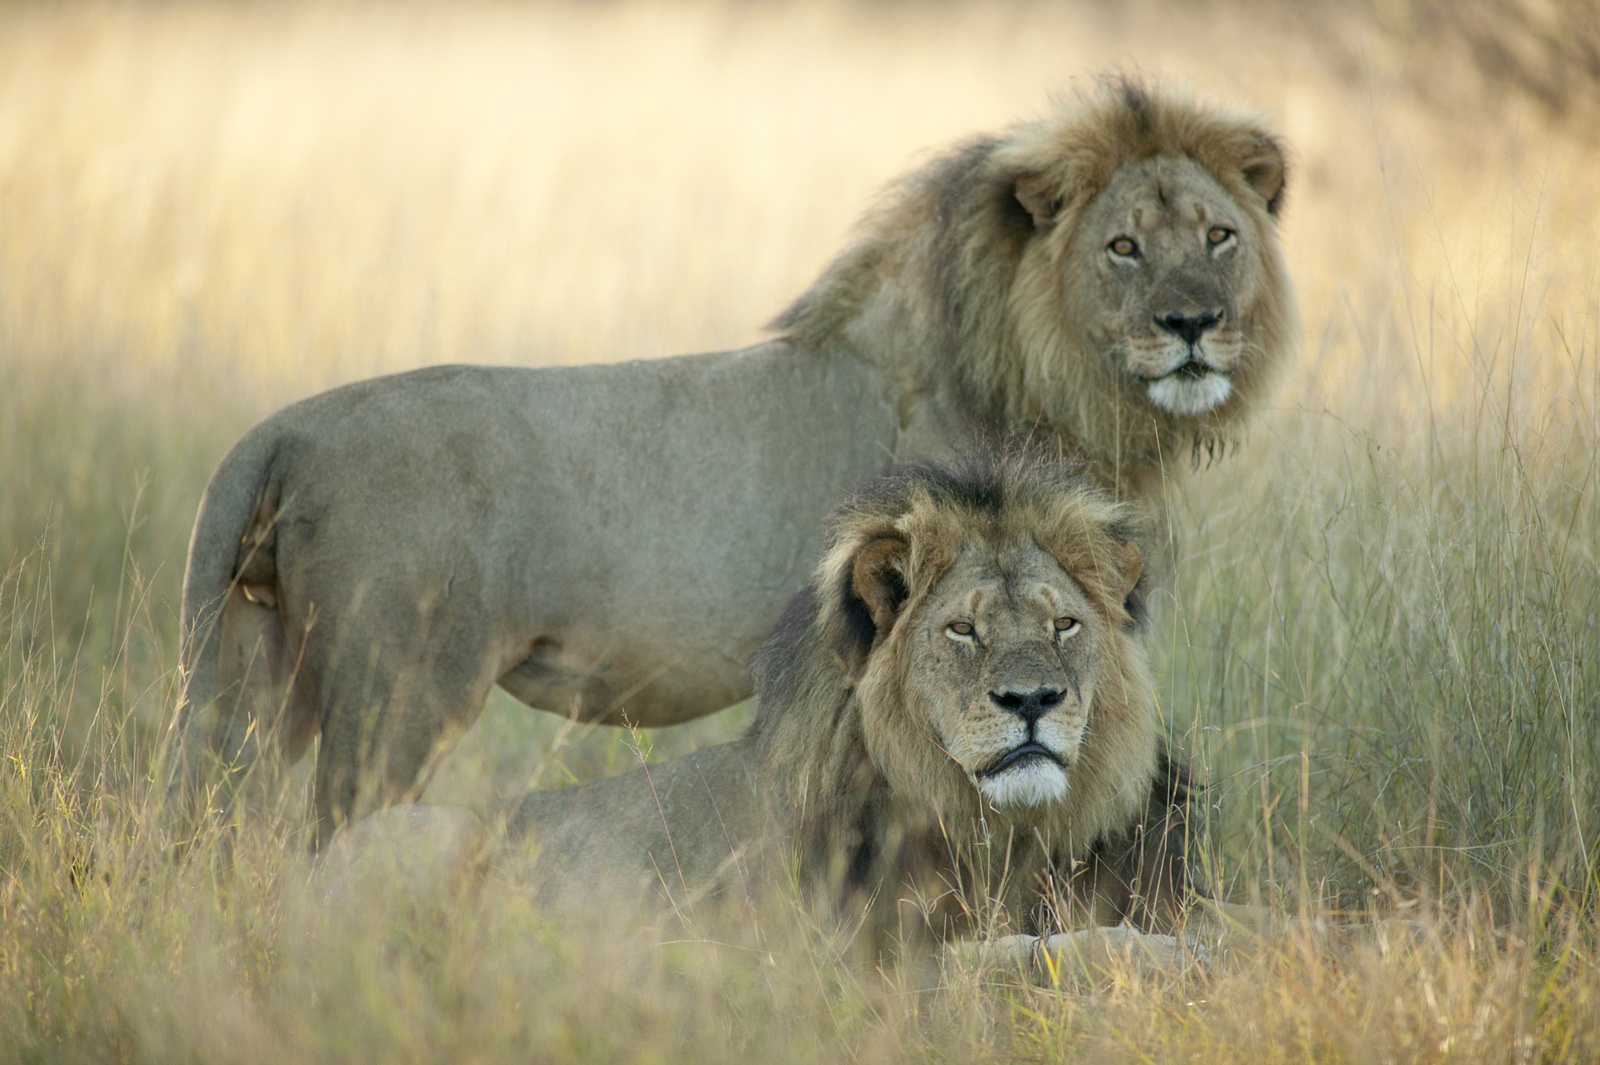 Cecil and Jericho: This is the last known photo of the great Cecil, taken just a month before he was killed. Cecil is laying down in the foreground.